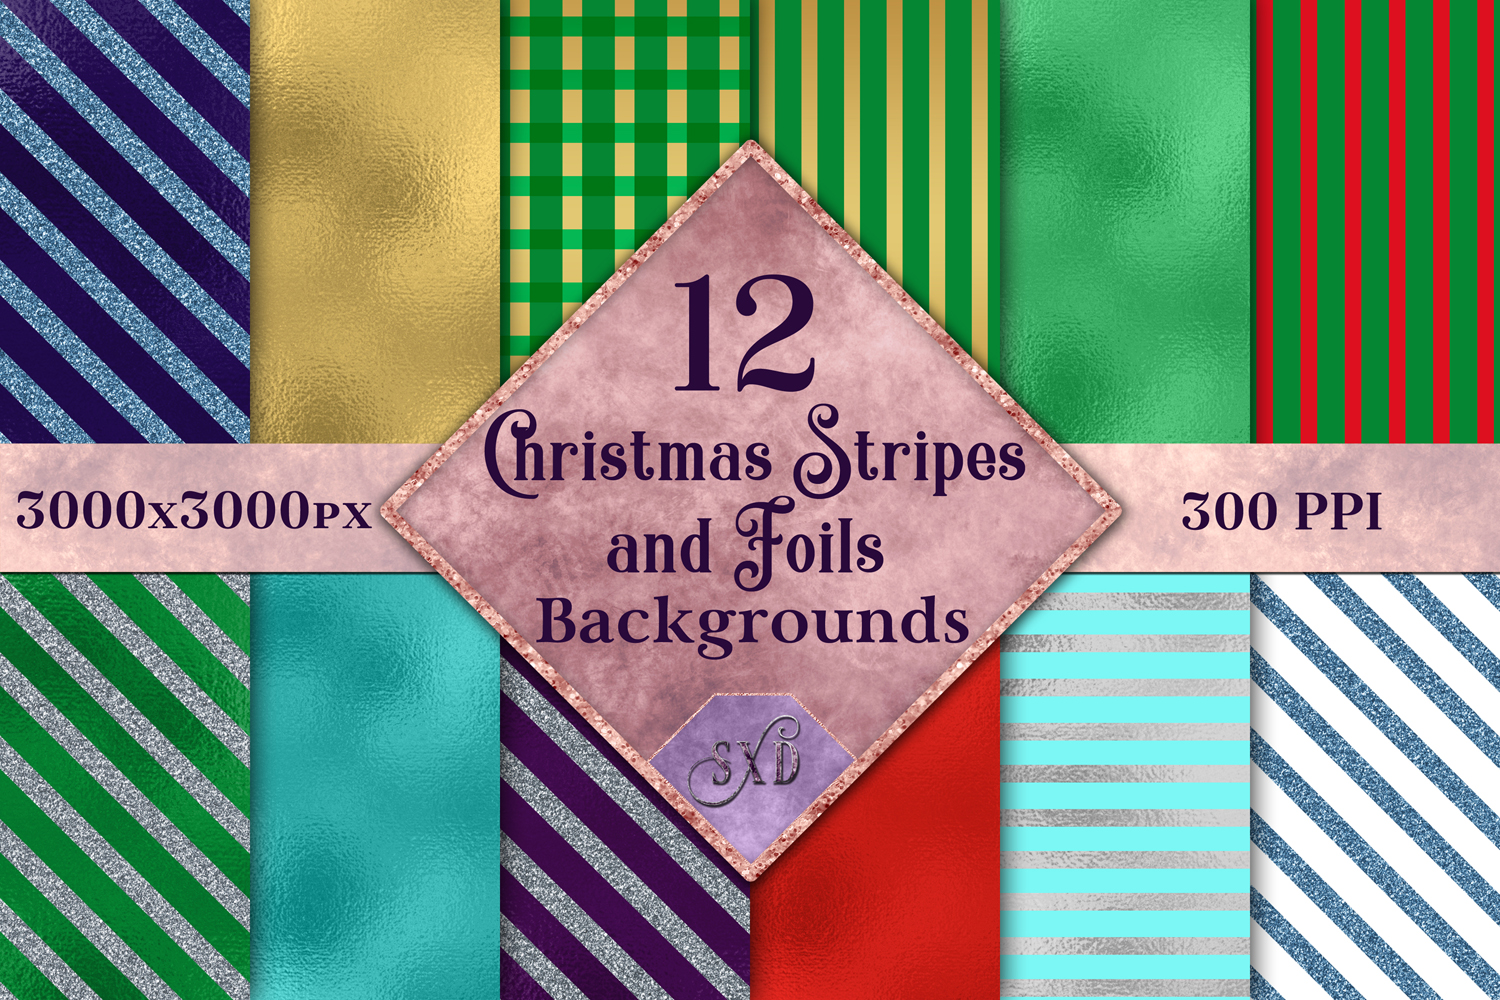 Christmas Stripes and Foils Backgrounds - 12 Image Set example image 1